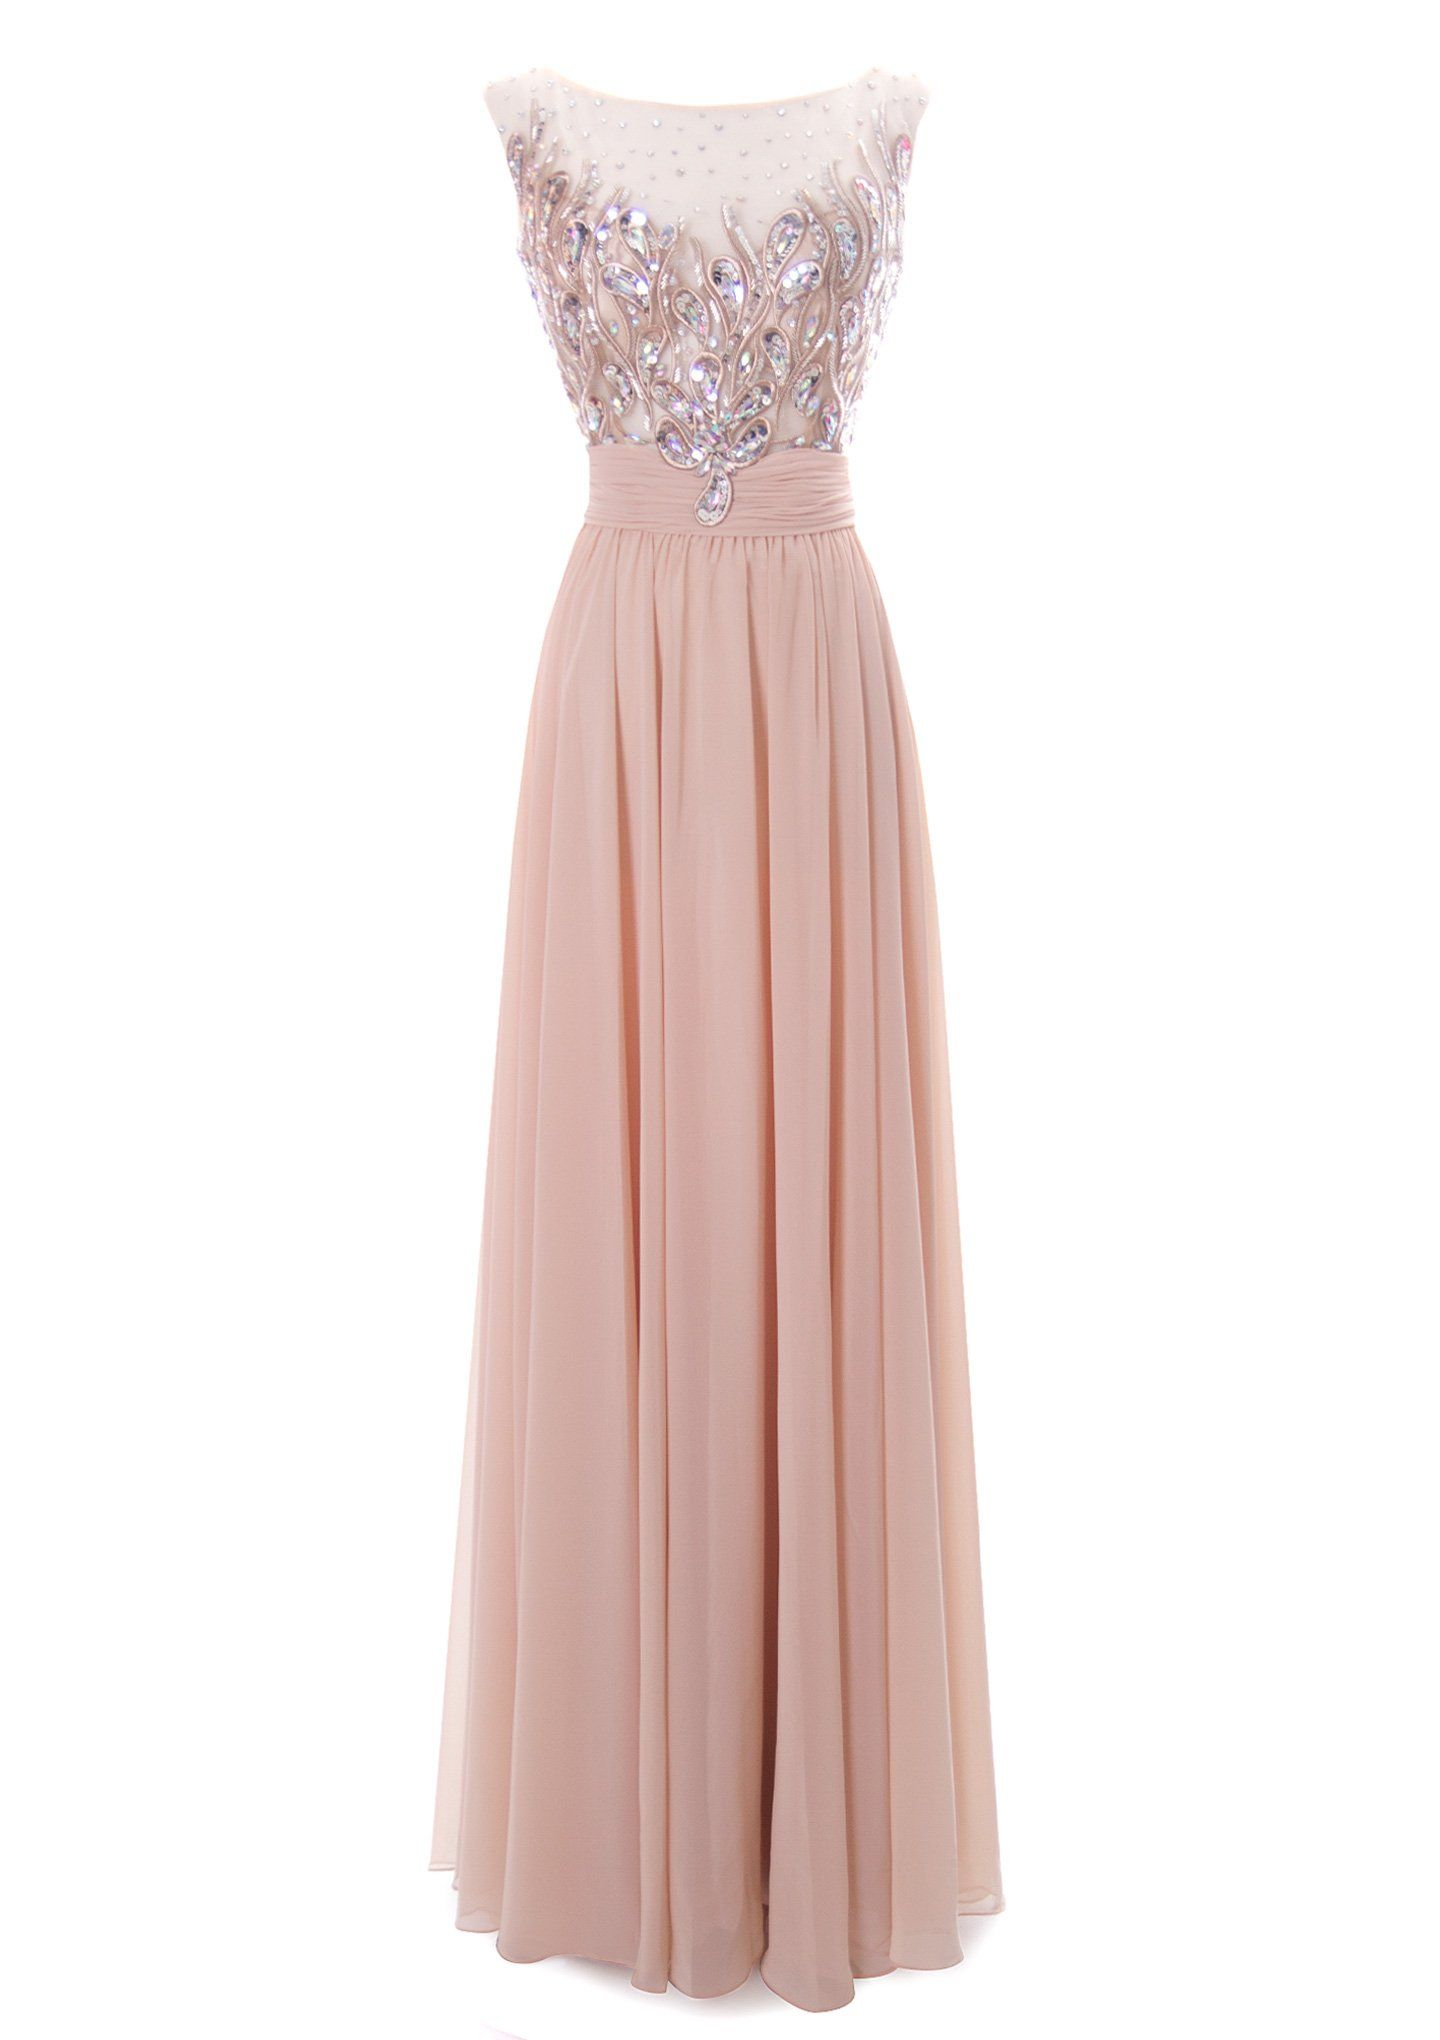 Fiesta Formals Shimmering Embroidered Formal Gown Nude 3XL | More ...